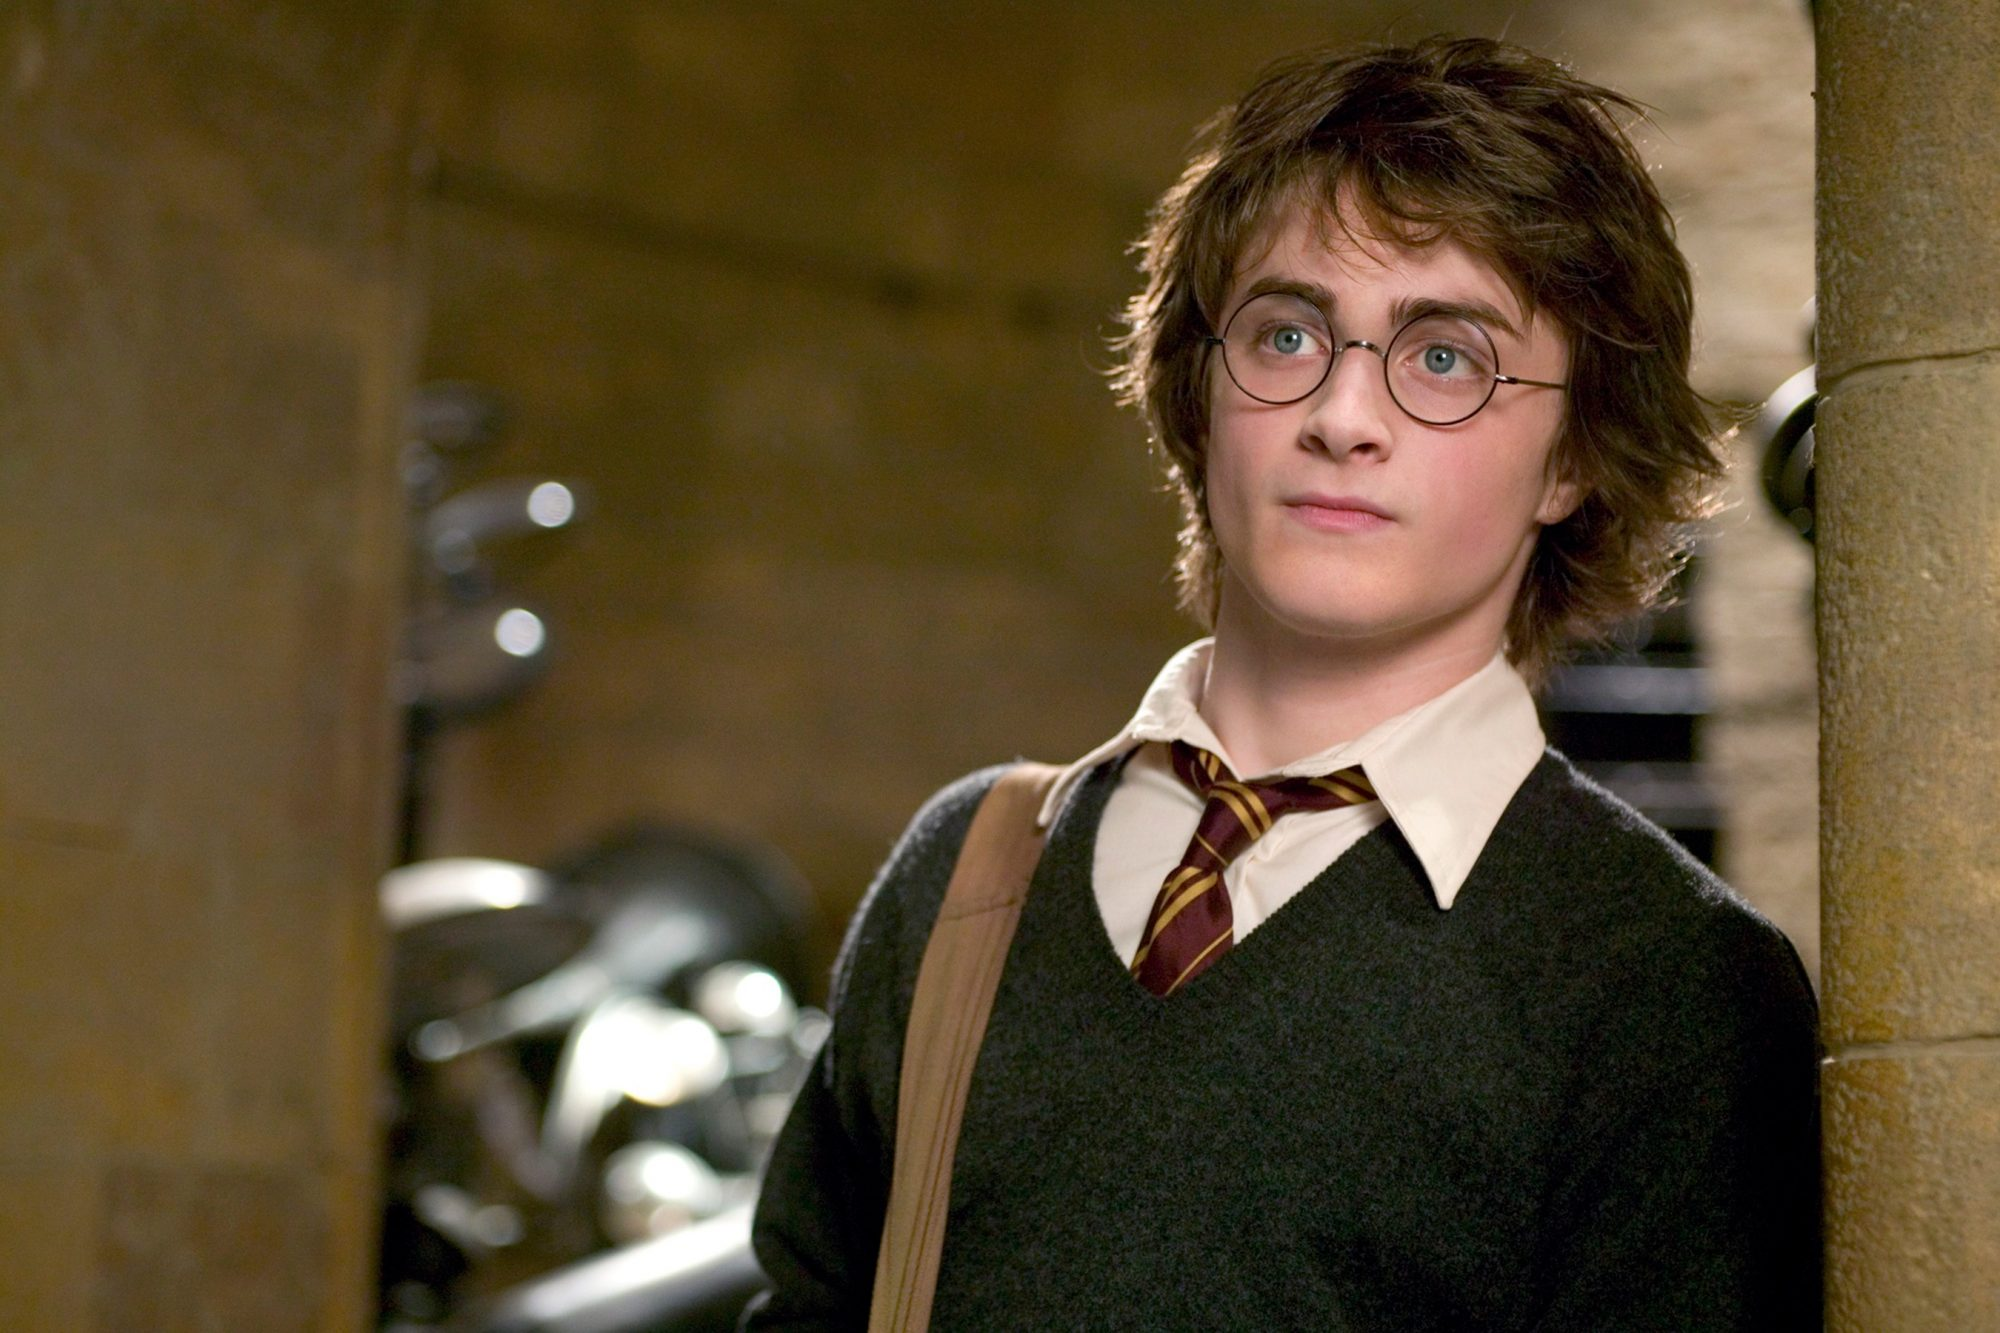 Harry Potter and the Goblet of Fire (2005)Daniel Radcliffe as Harry Potter